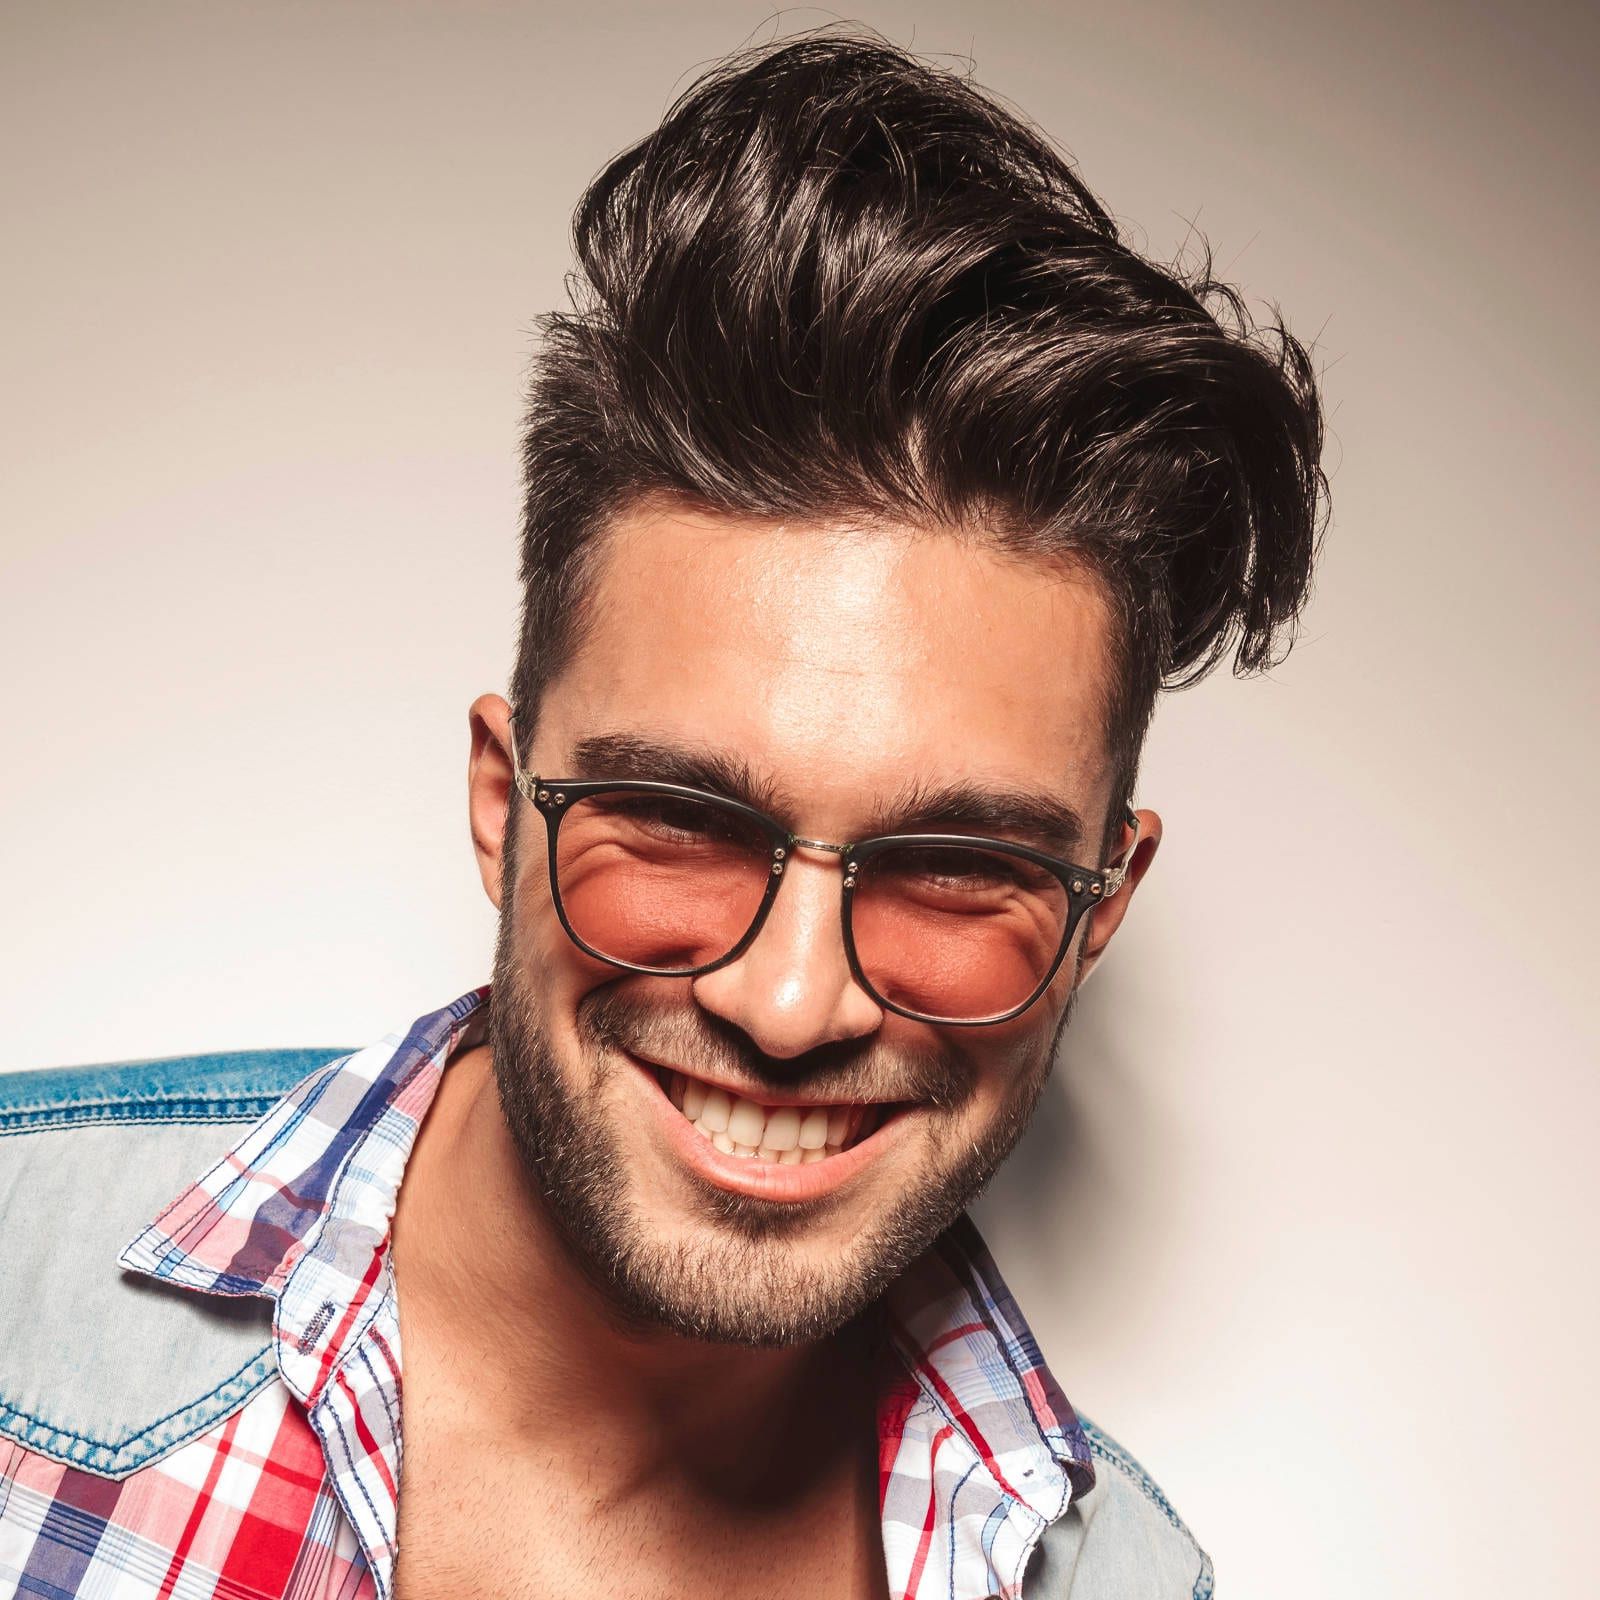 Best And Newest Medium Hairstyles For Glasses Wearers Pertaining To 40 Favorite Haircuts For Men With Glasses: Find Your Perfect Style (View 6 of 20)